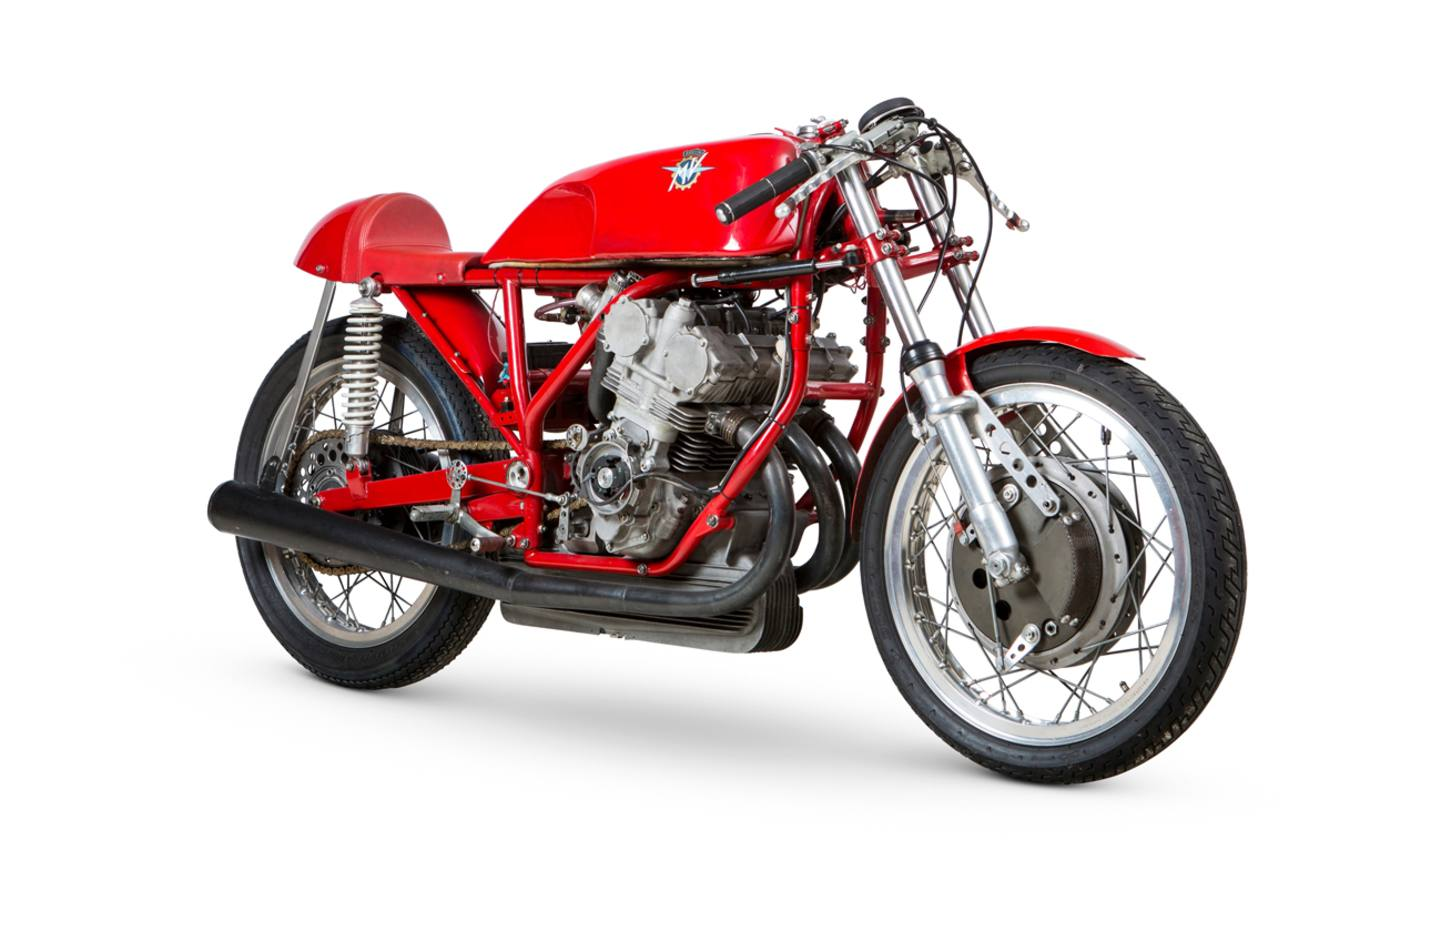 an mv agusta grand prix motorbike tops the lots at this bonhams auction how to spend it. Black Bedroom Furniture Sets. Home Design Ideas